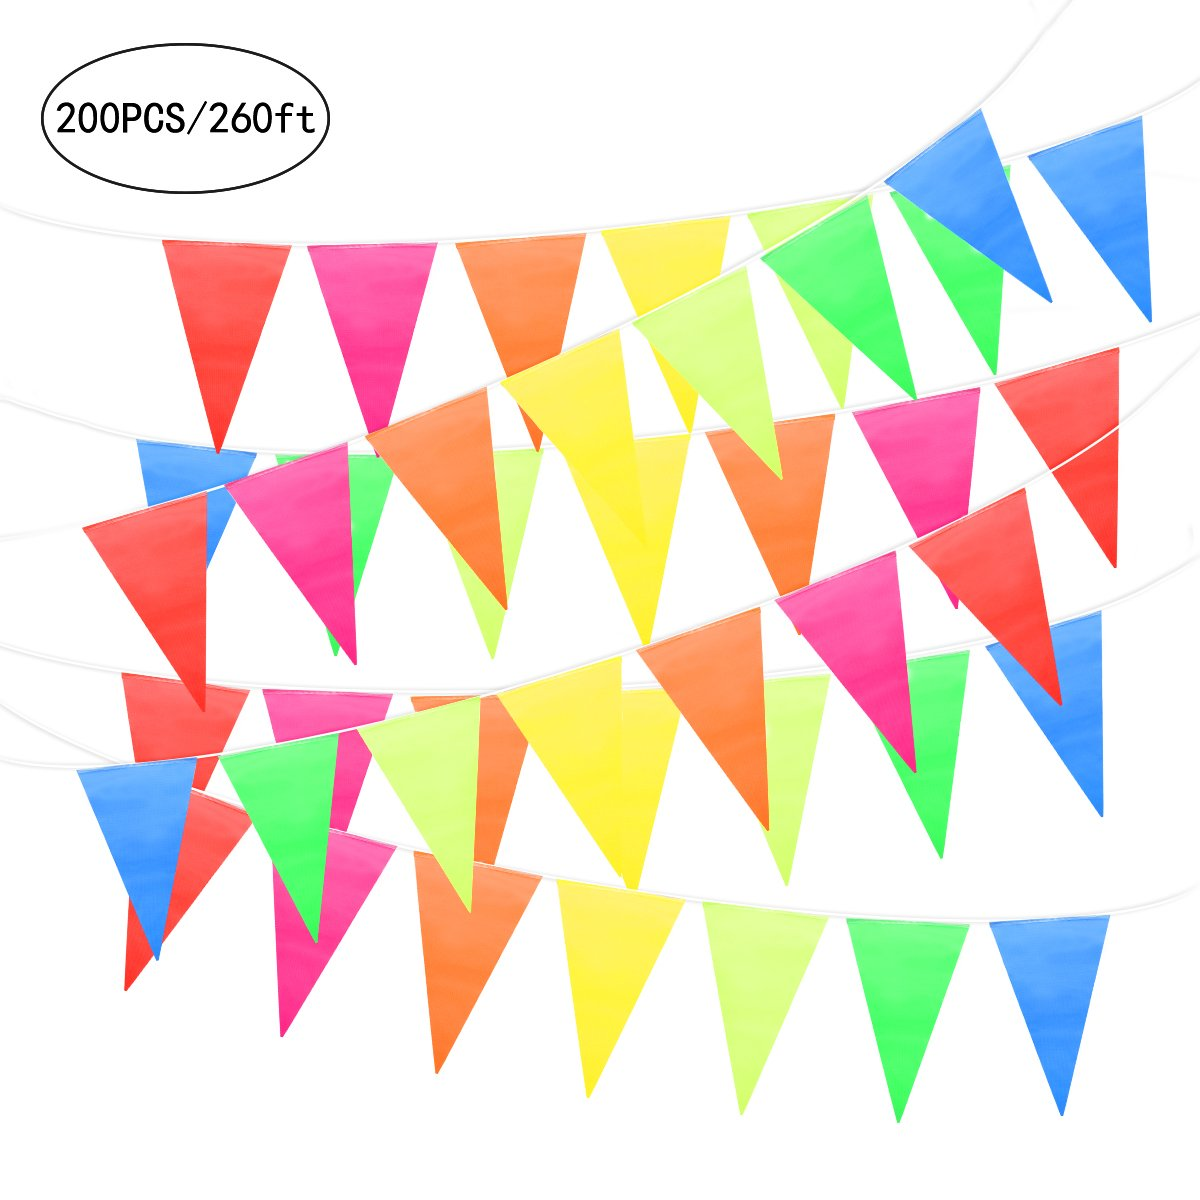 Unomor 260Feet Multicolor Pennant Banner Flags Banners for Party Decorations, Birthdays, Festivals Decorations (260feet Pennant Banner) by Unomor